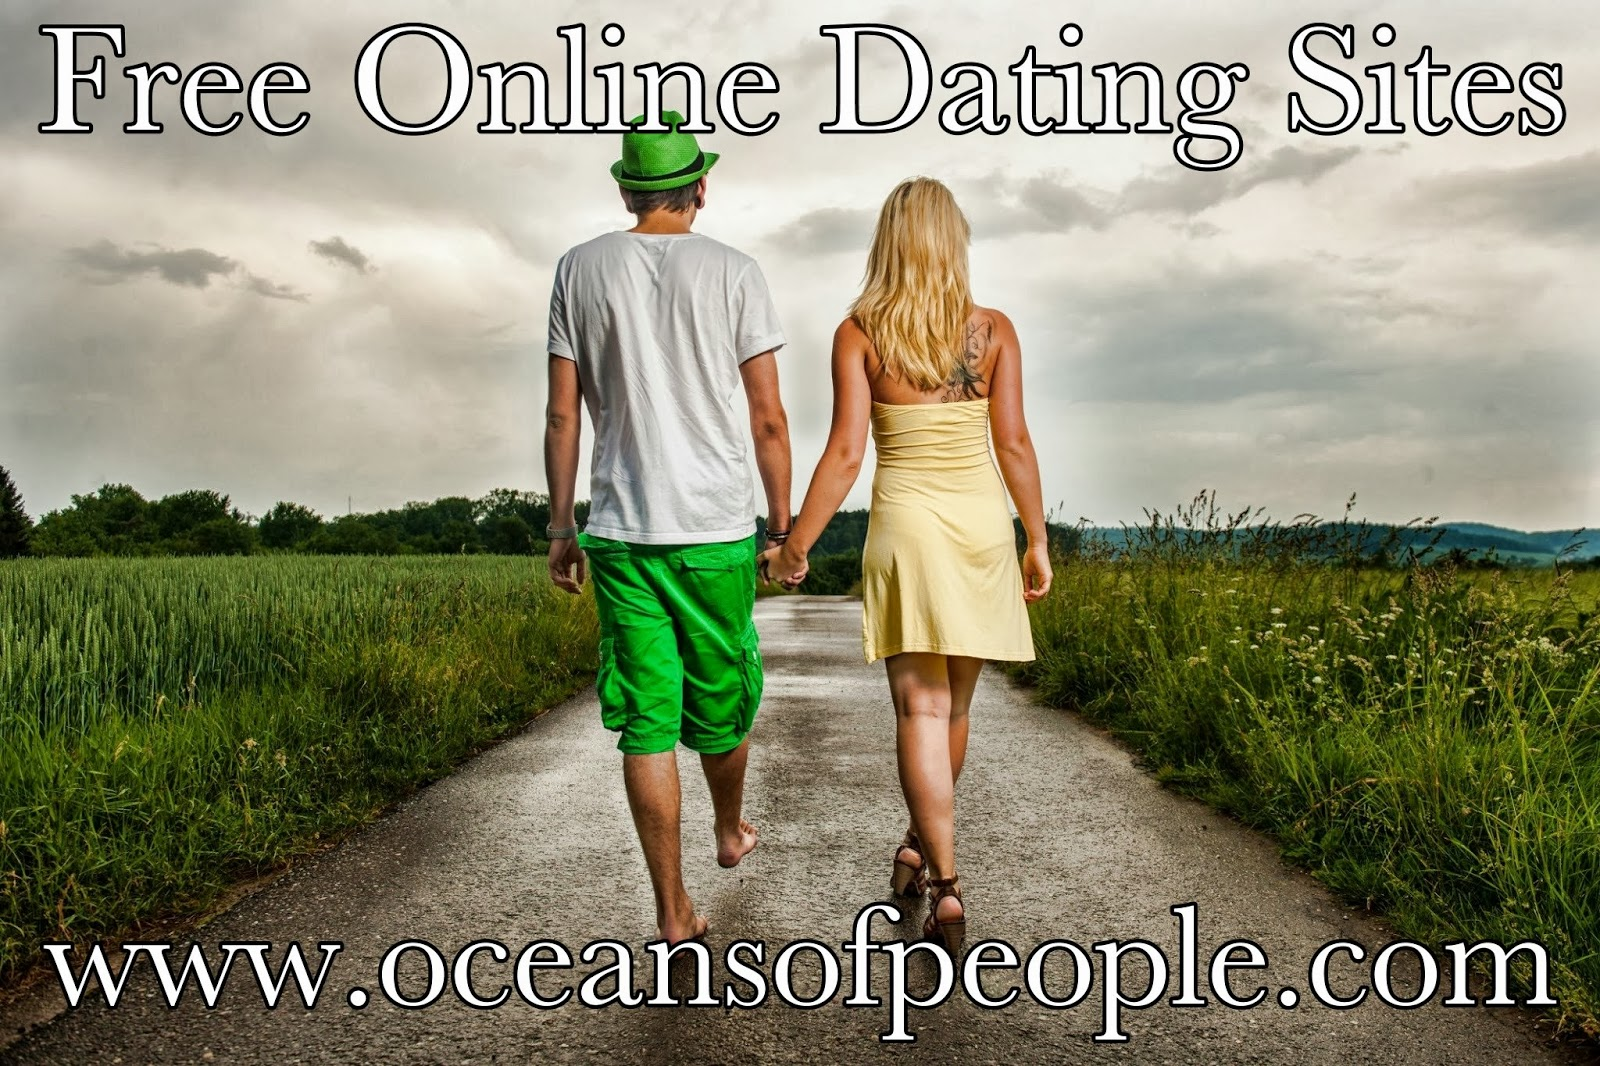 Free pegging dating sites